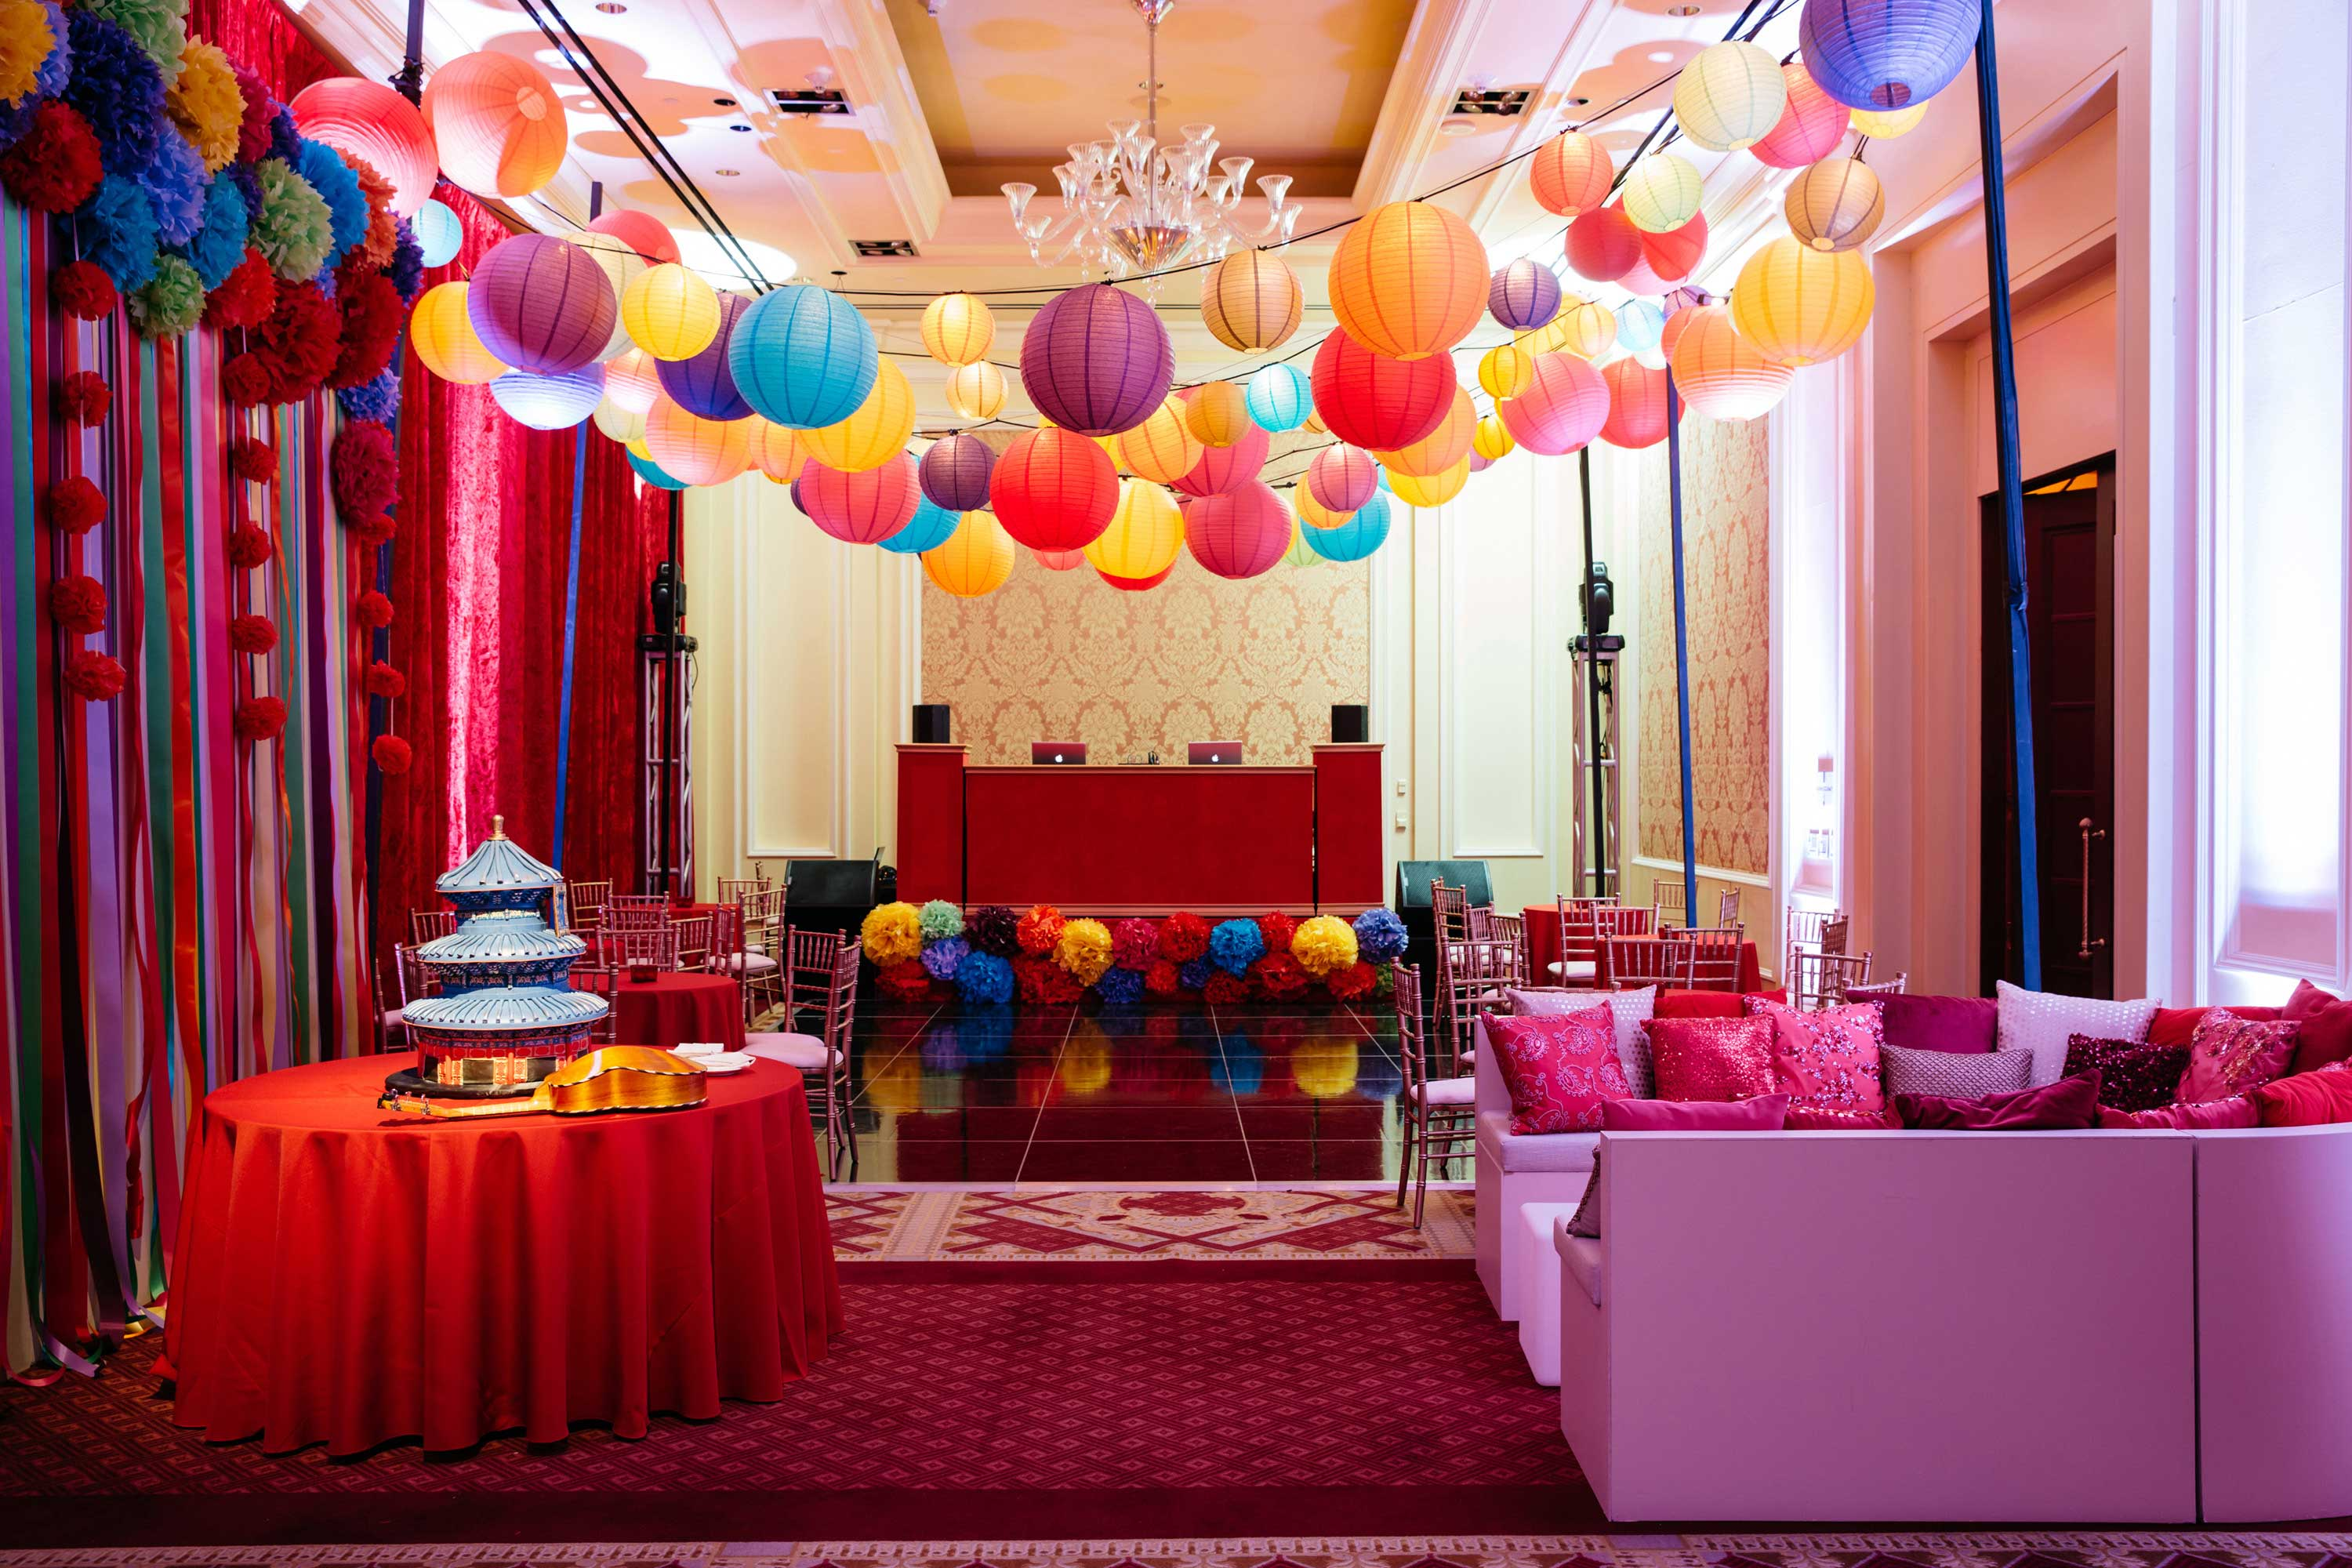 Wedding Ideas: Fun Wedding Décor for Your After Party - Inside Weddings